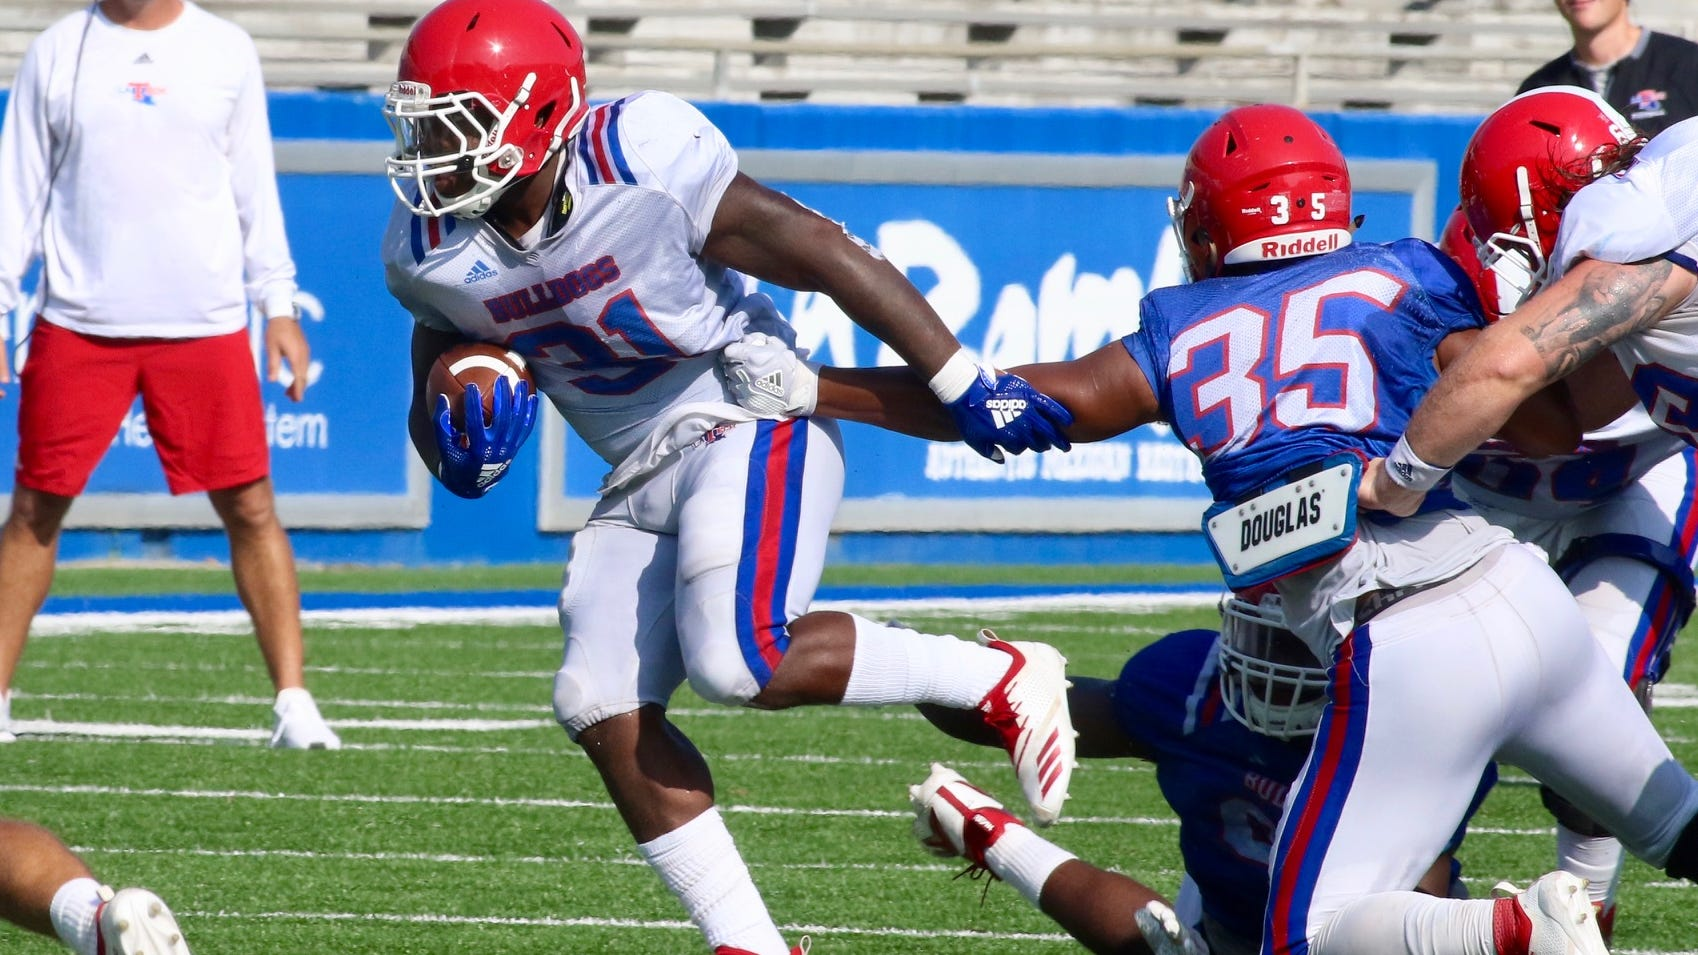 Louisiana Tech redshirt sophomore running back Justin Henderson (31) runs through a tackle during the team's second fall scrimmage Saturday at Joe Aillet Stadium.